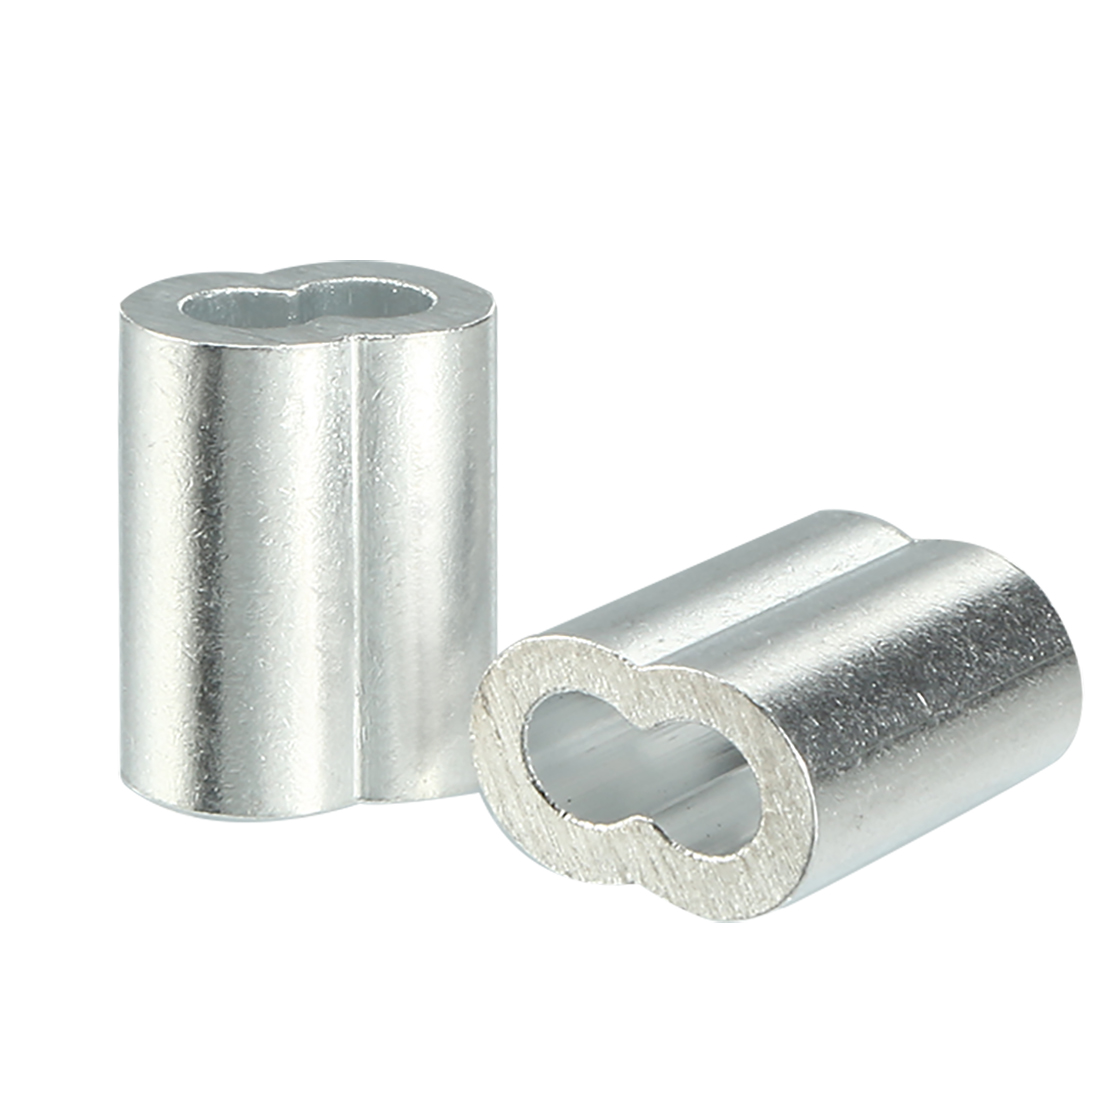 4mm 5/32-inch Cable Wire Rope Aluminum Sleeves Clip Crimping Loop 50pcs